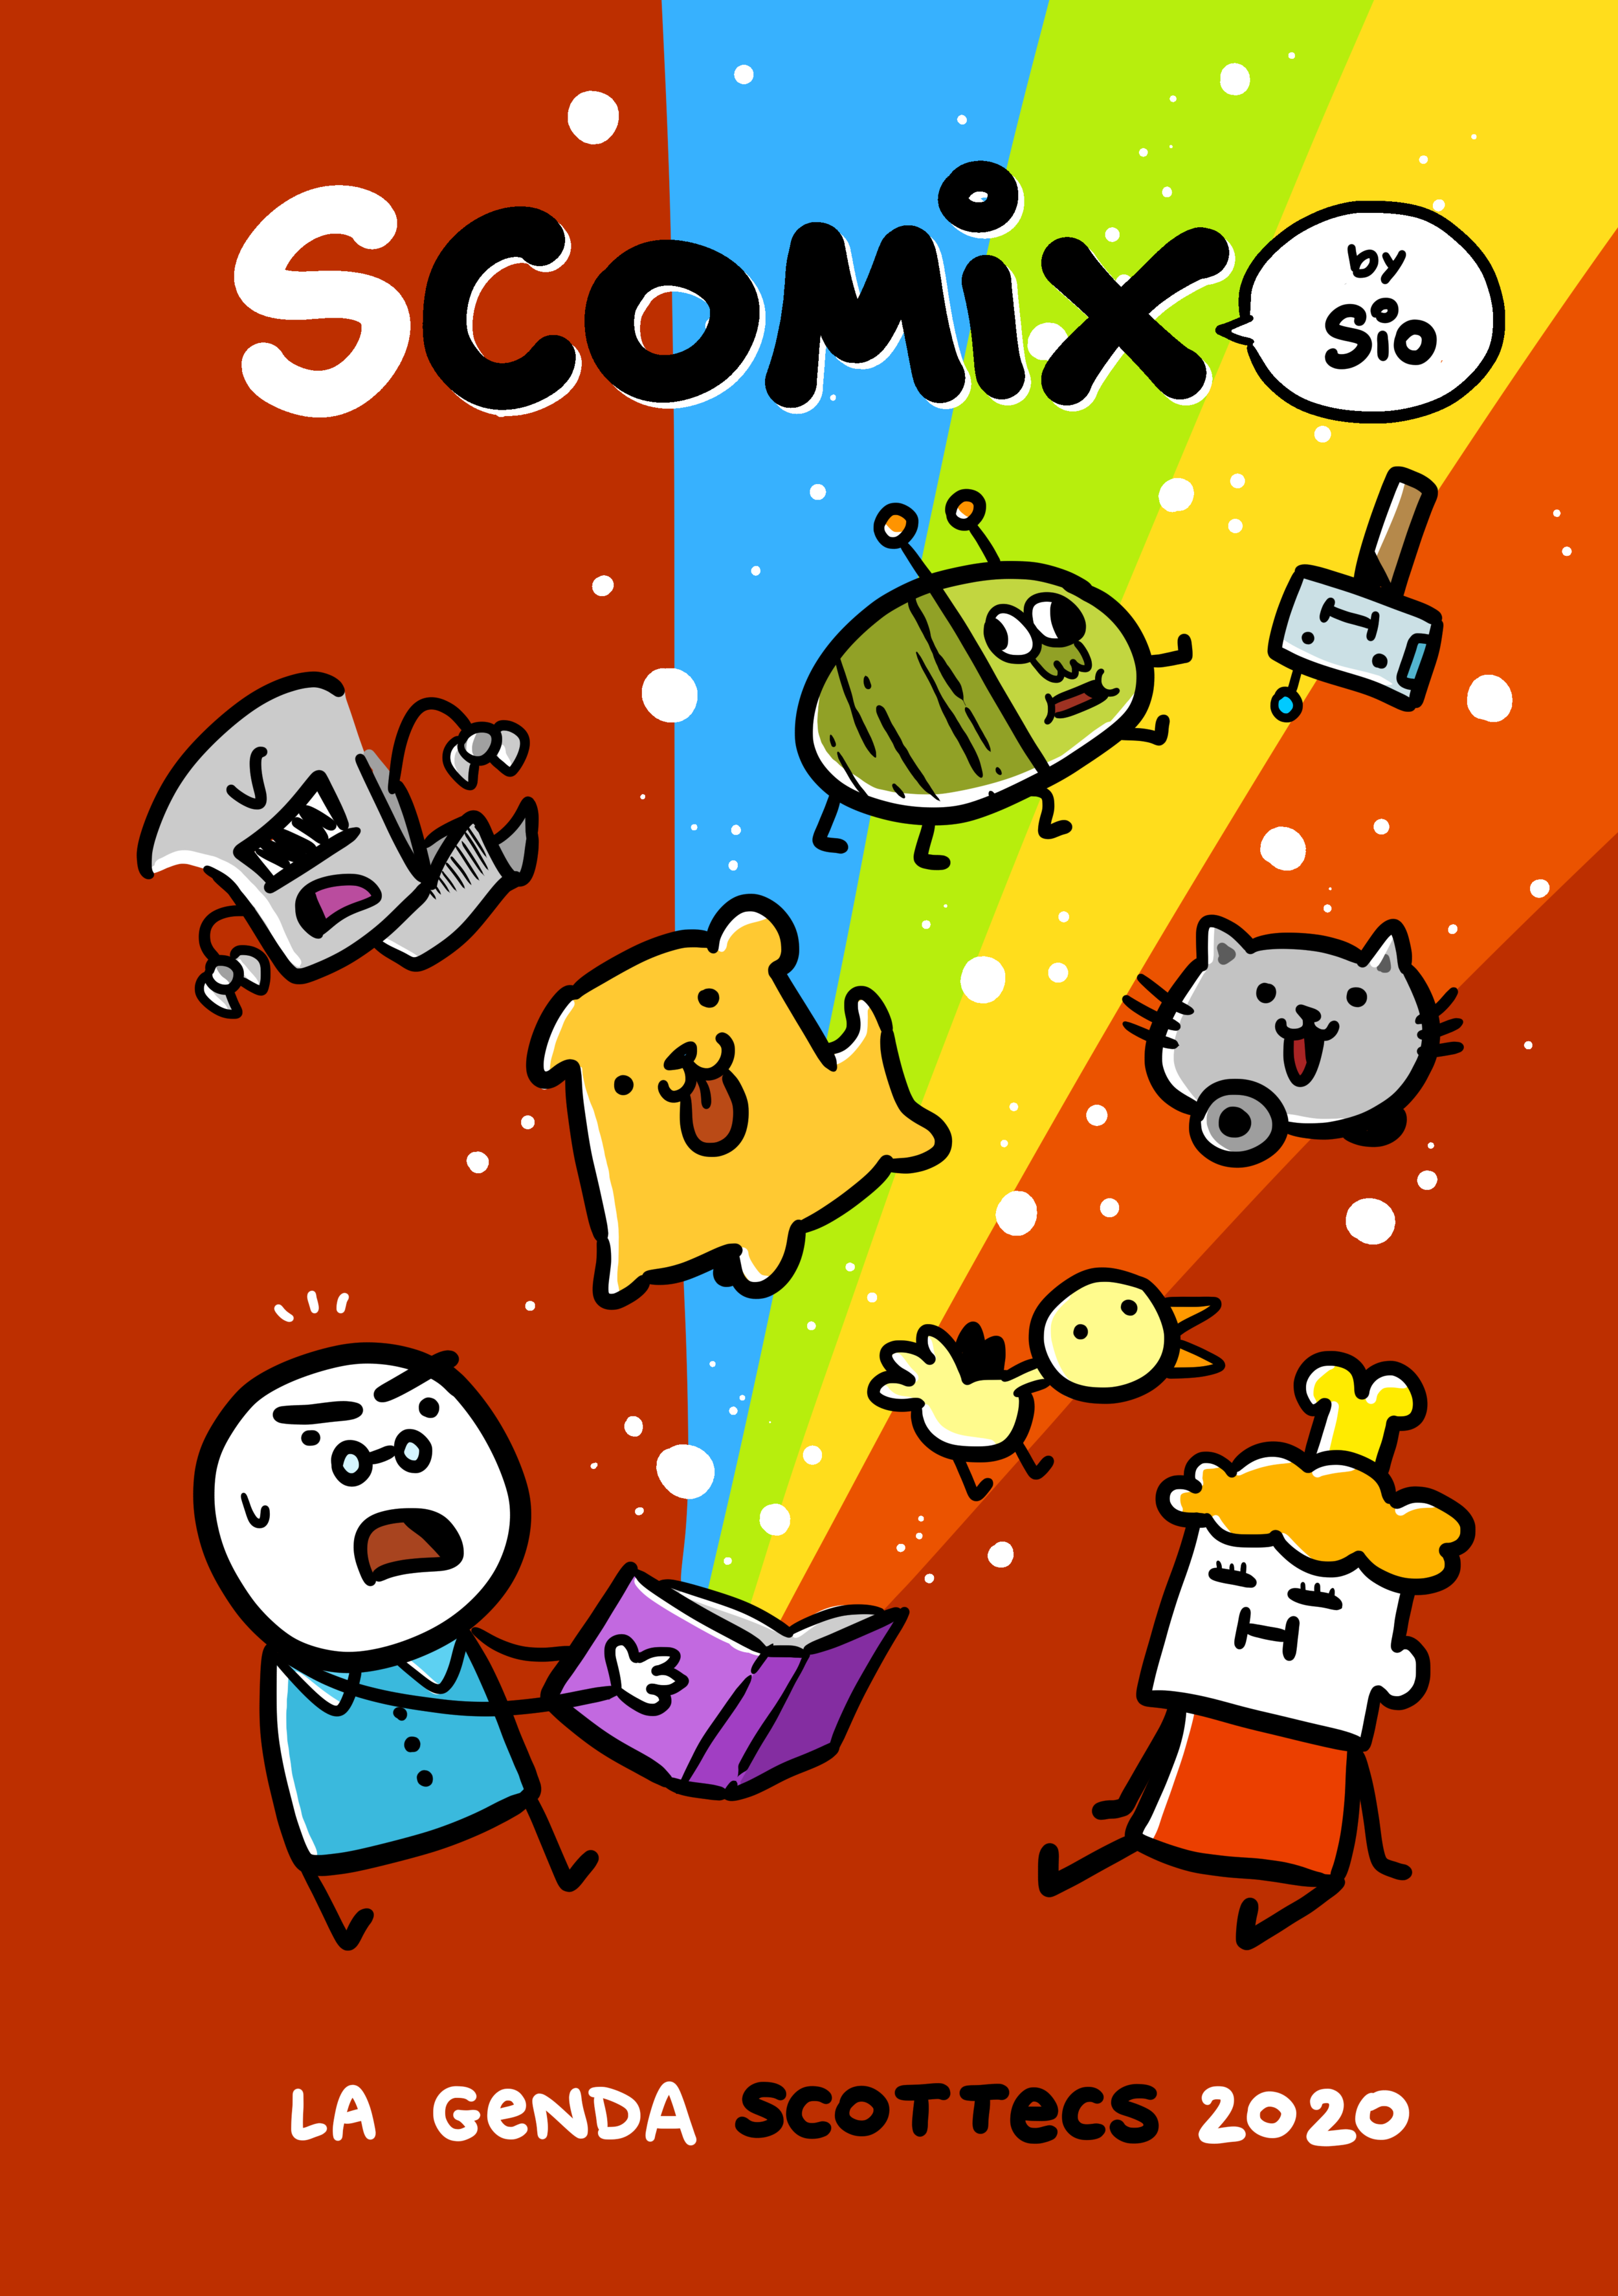 Cover Scomix 2020 rossa.png